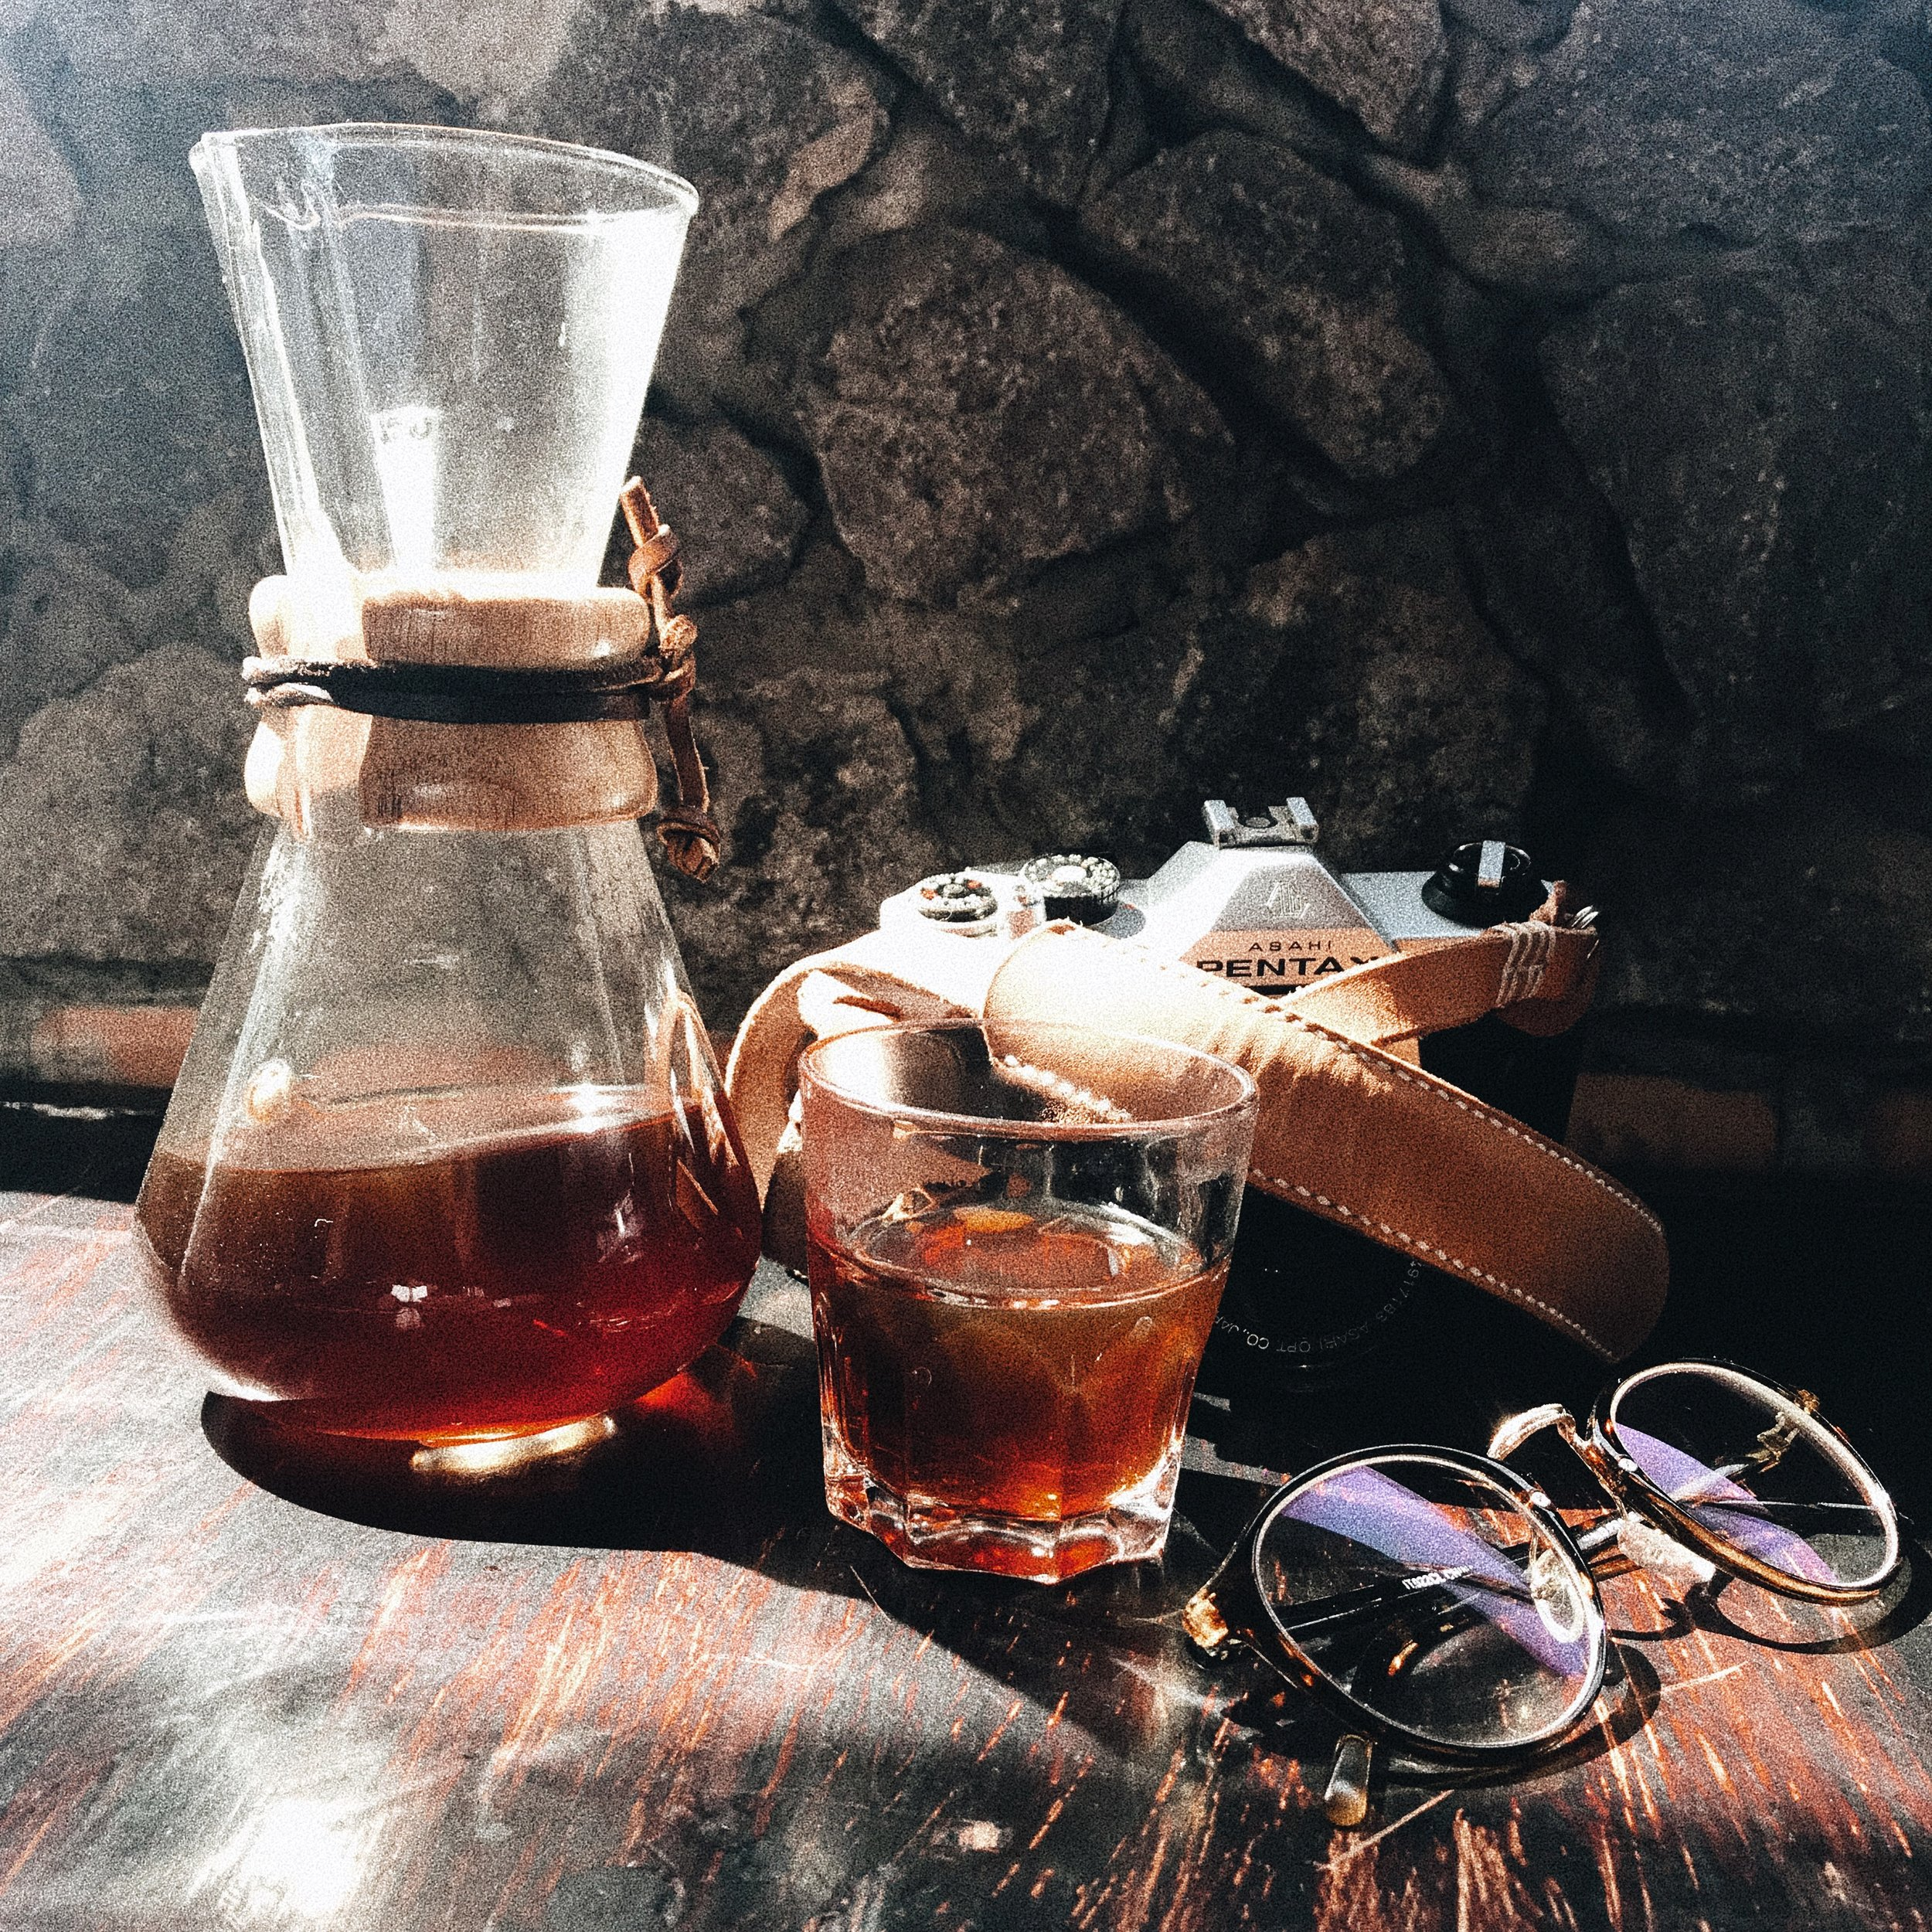 A Chemex is the perfect drink to enjoy the view at Buena Vista.